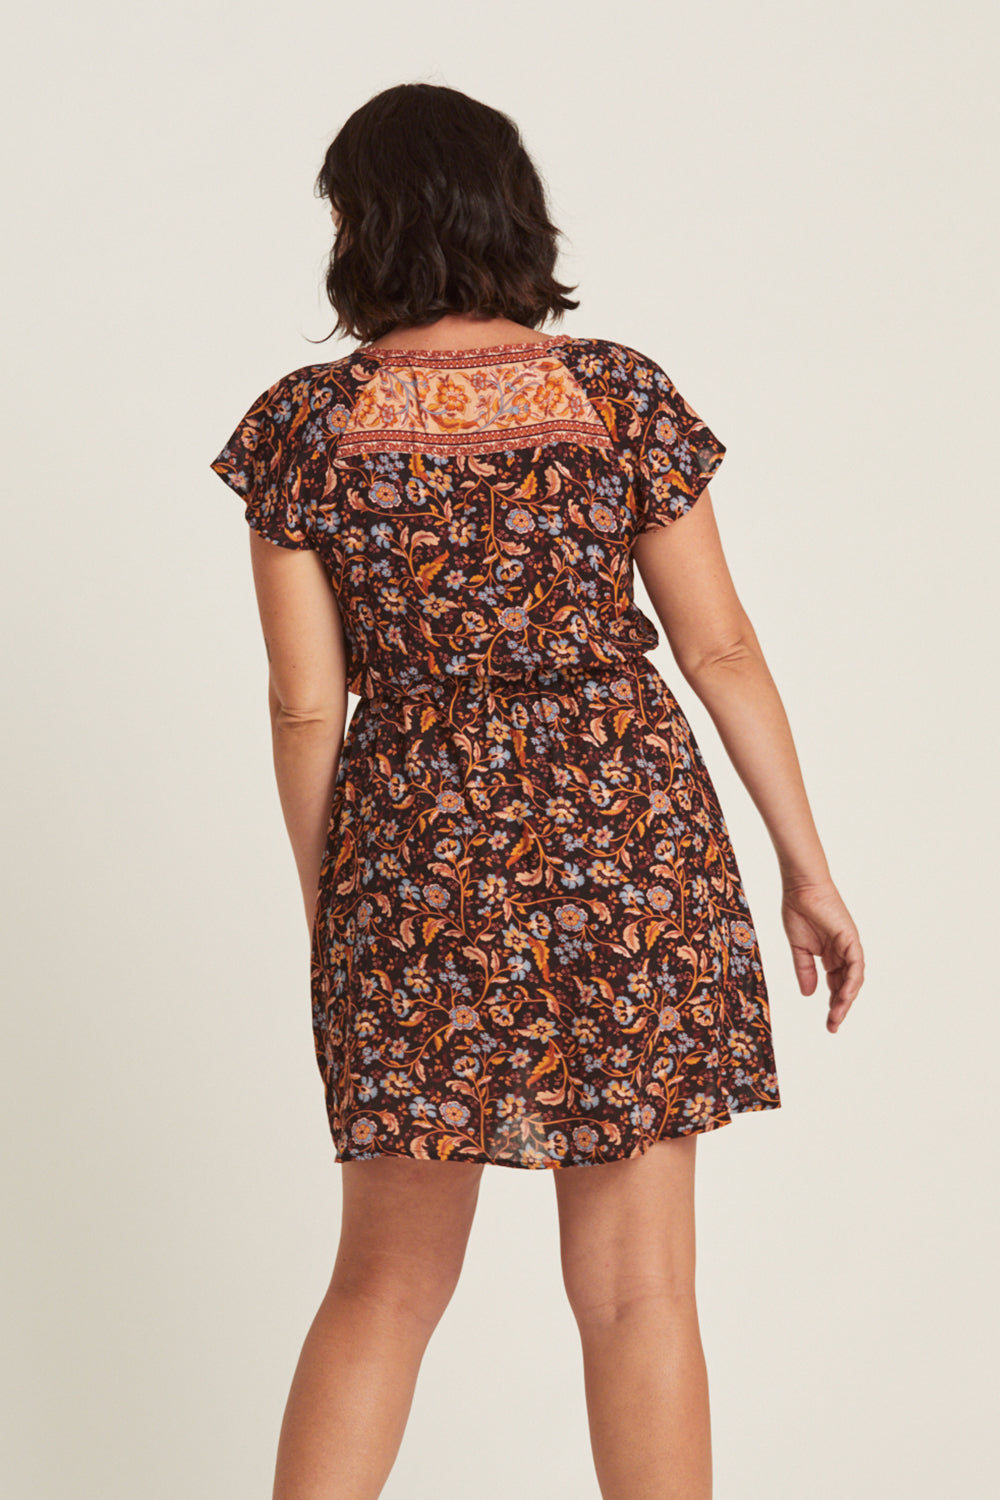 Daisy Chain Mini Dress in Amber